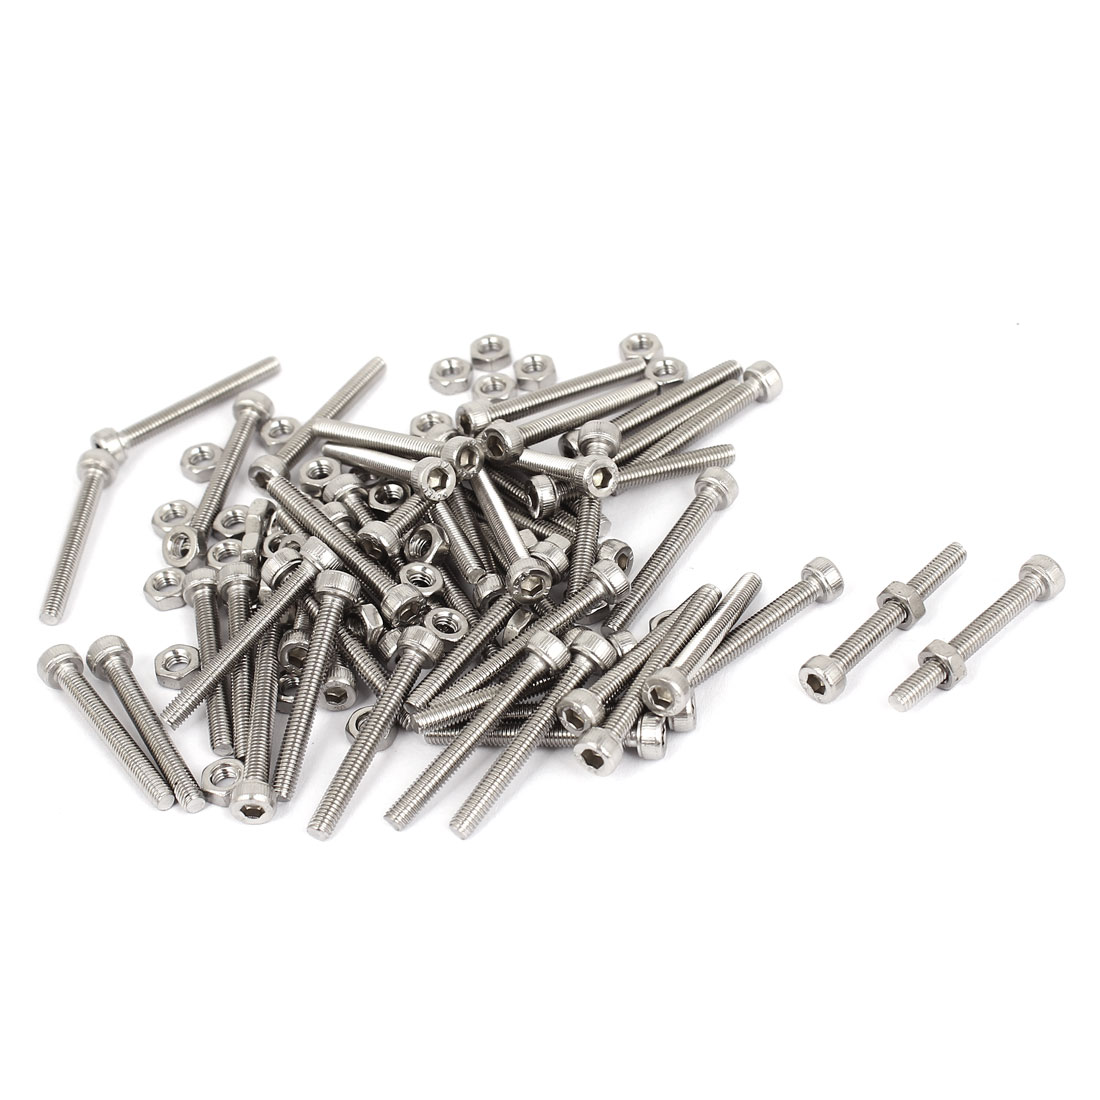 M3x25mm Stainless Steel Hex Socket Head Knurled Cap Screws Bolts Nut Set 50Pcs